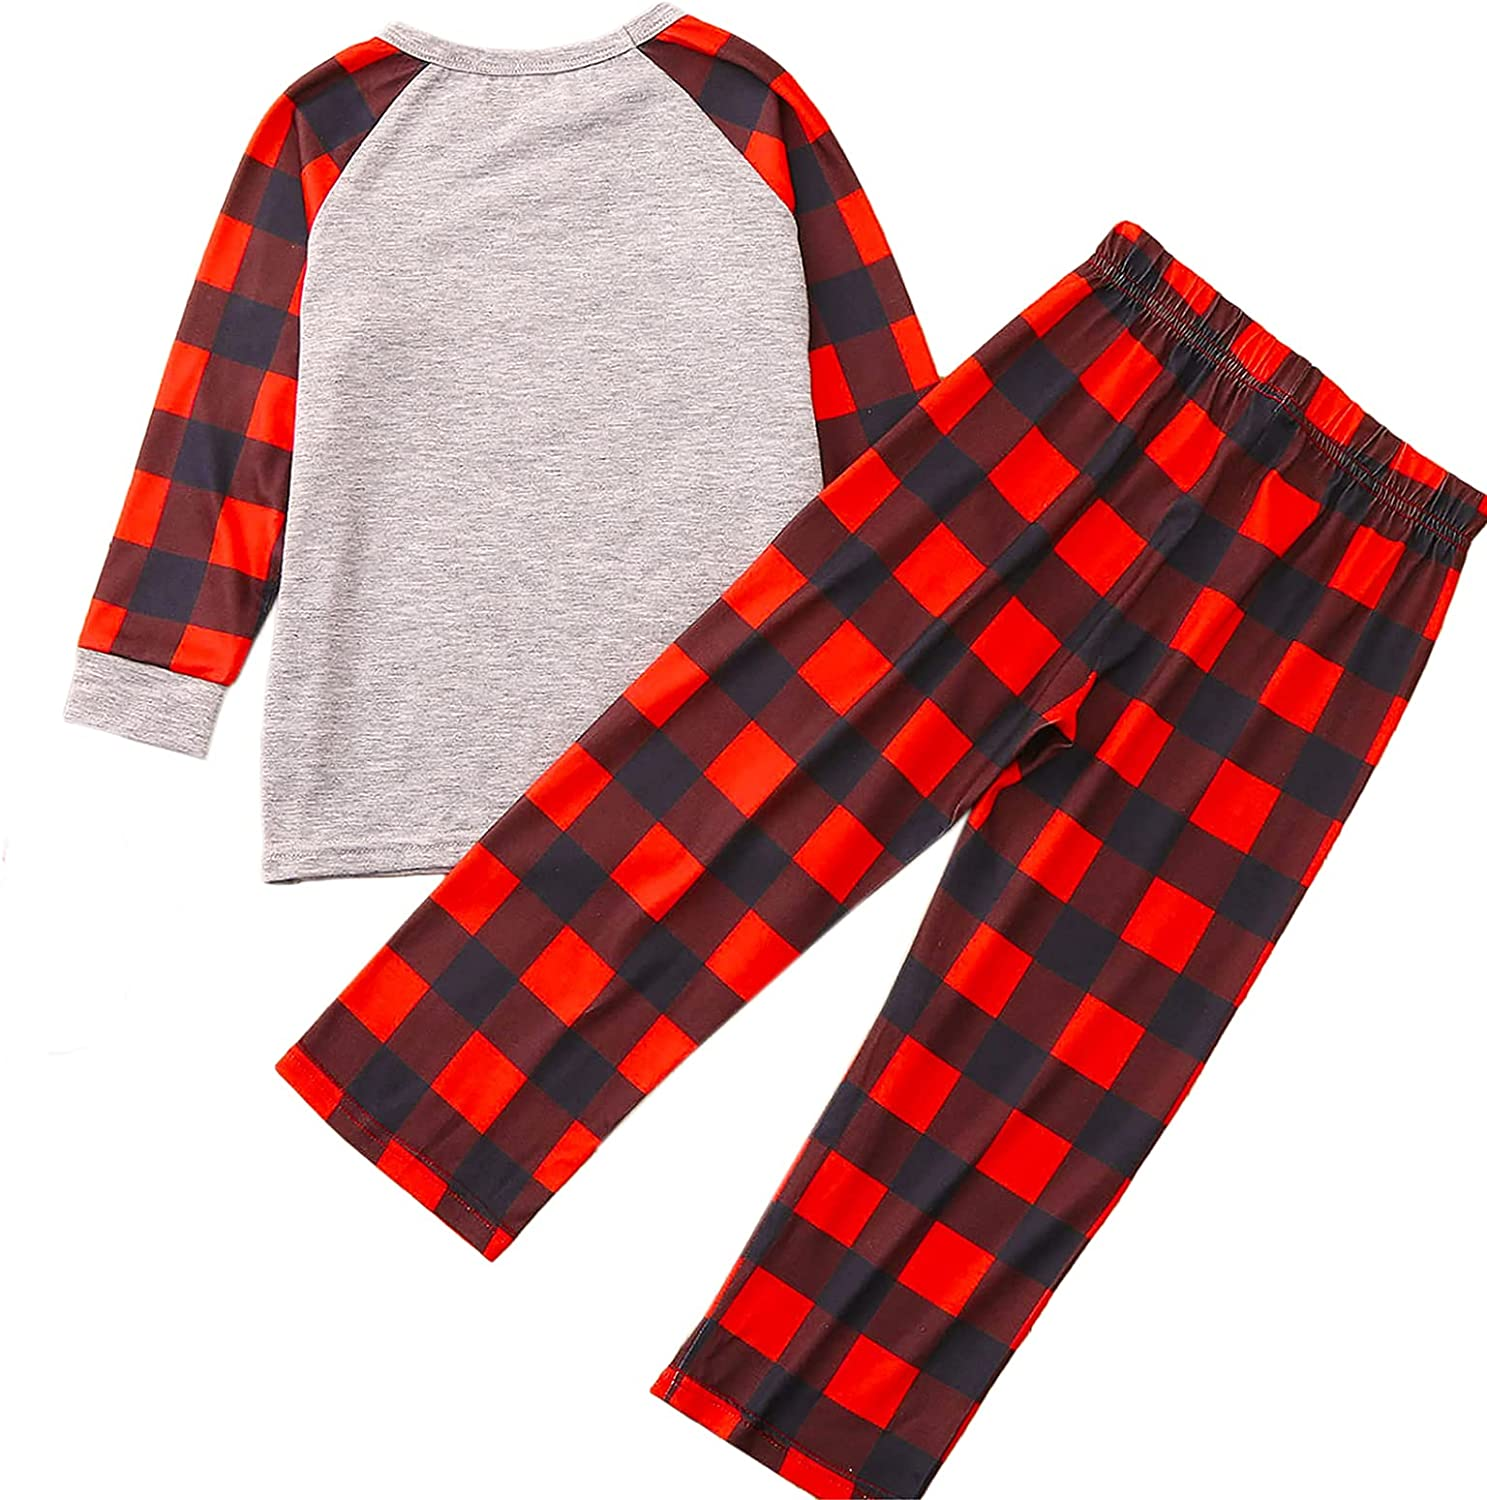 Matching Family Christmas Pajamas Christmas PJ's with Letter Print Top Plaid Pants and Color Block Jumpsuit